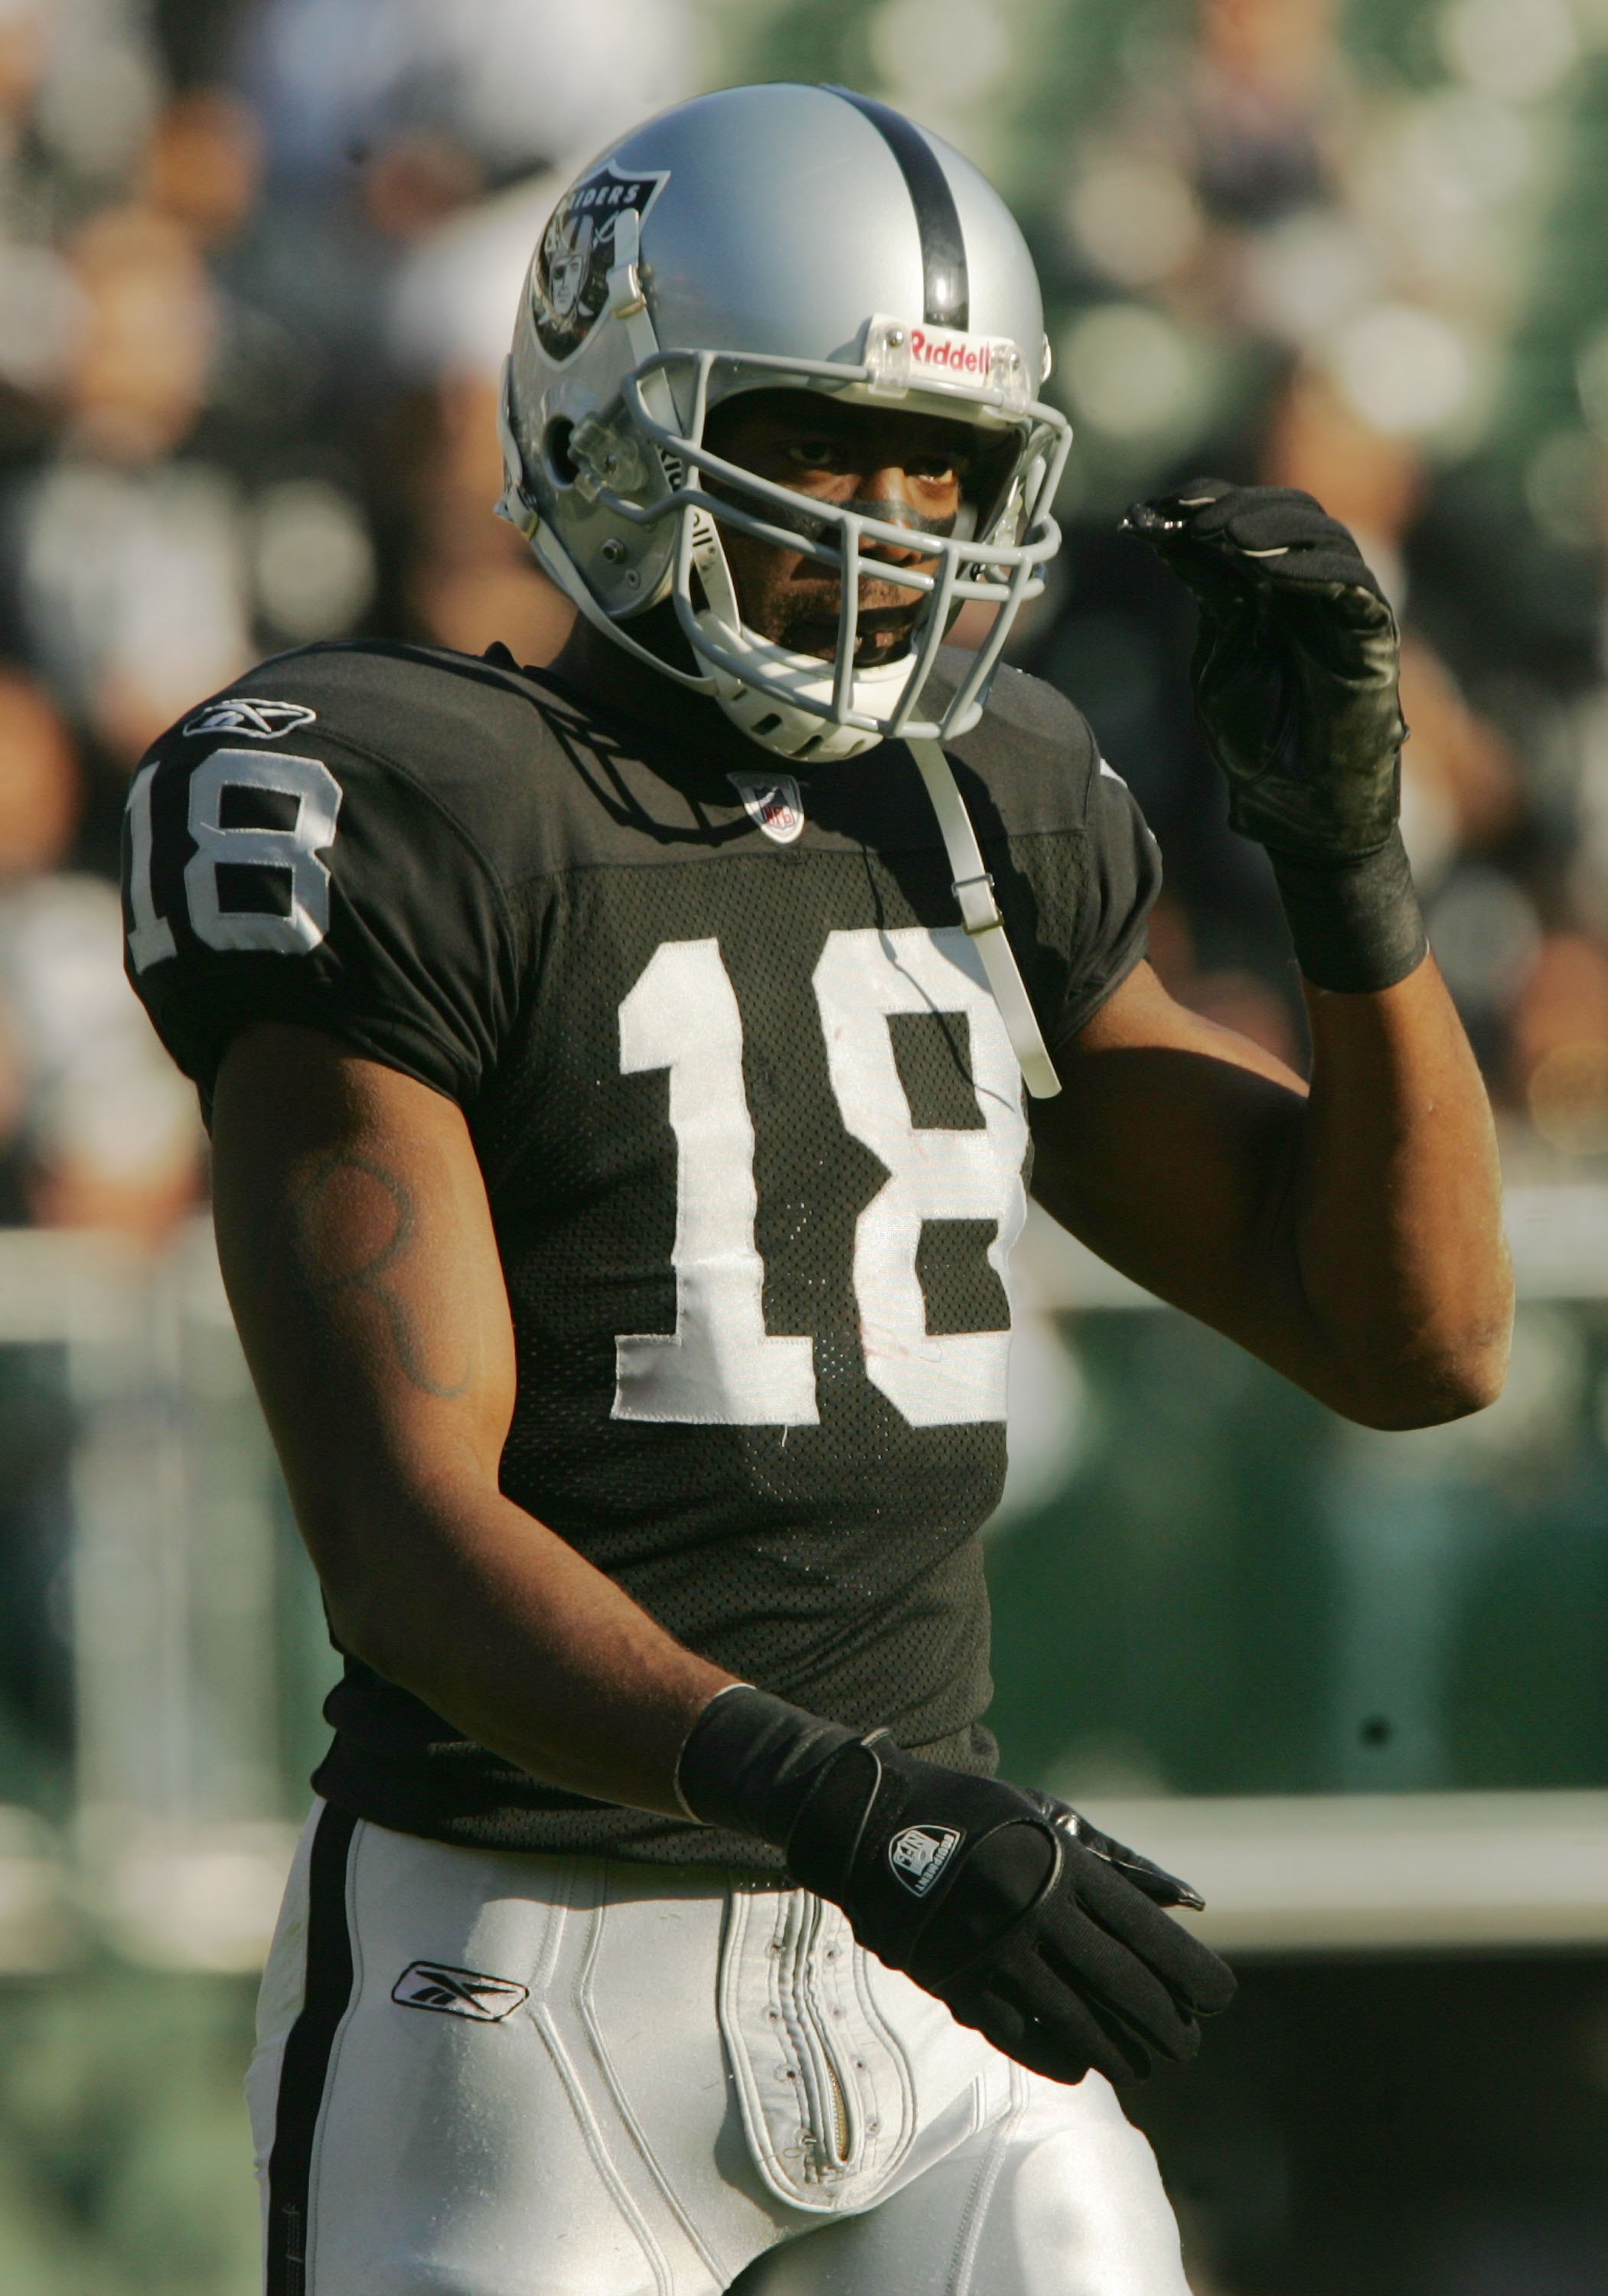 OAKLAND, CA - DECEMBER 3:  Randy Moss #18 of the Oakland Raiders reacts after a play against the Houston Texans during an NFL game at McAfee Coliseum December 3, 2006 in Oakland, California.  (Photo by Stephen Dunn/Getty Images)